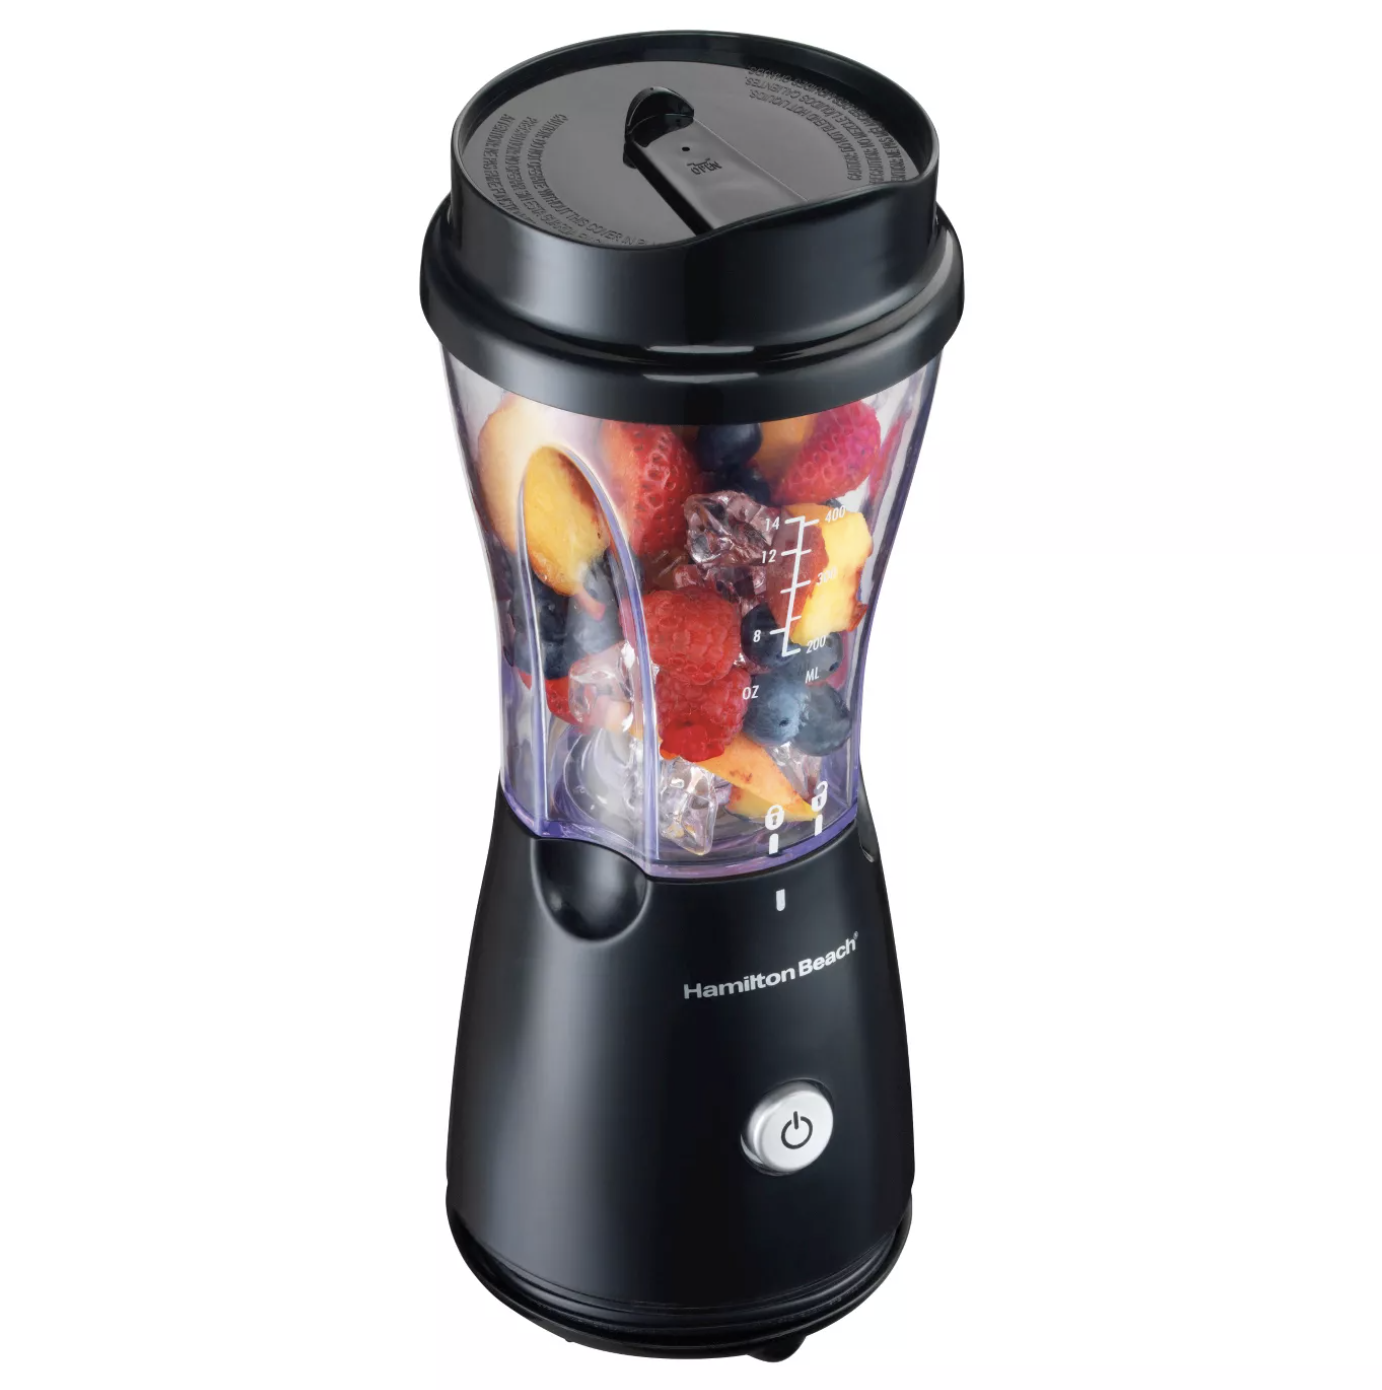 Small, single-serve Hamilton Beach blender with fruit and ice inside